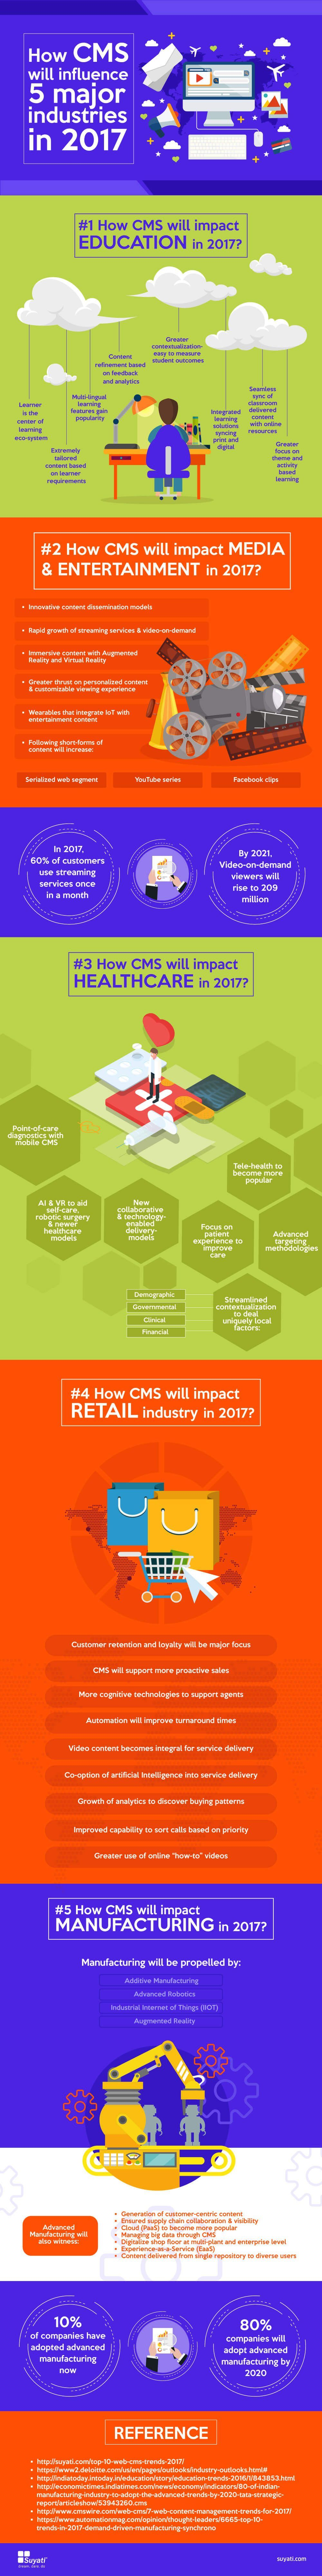 How-CMS-will-influence-5-major-industries-in-2017